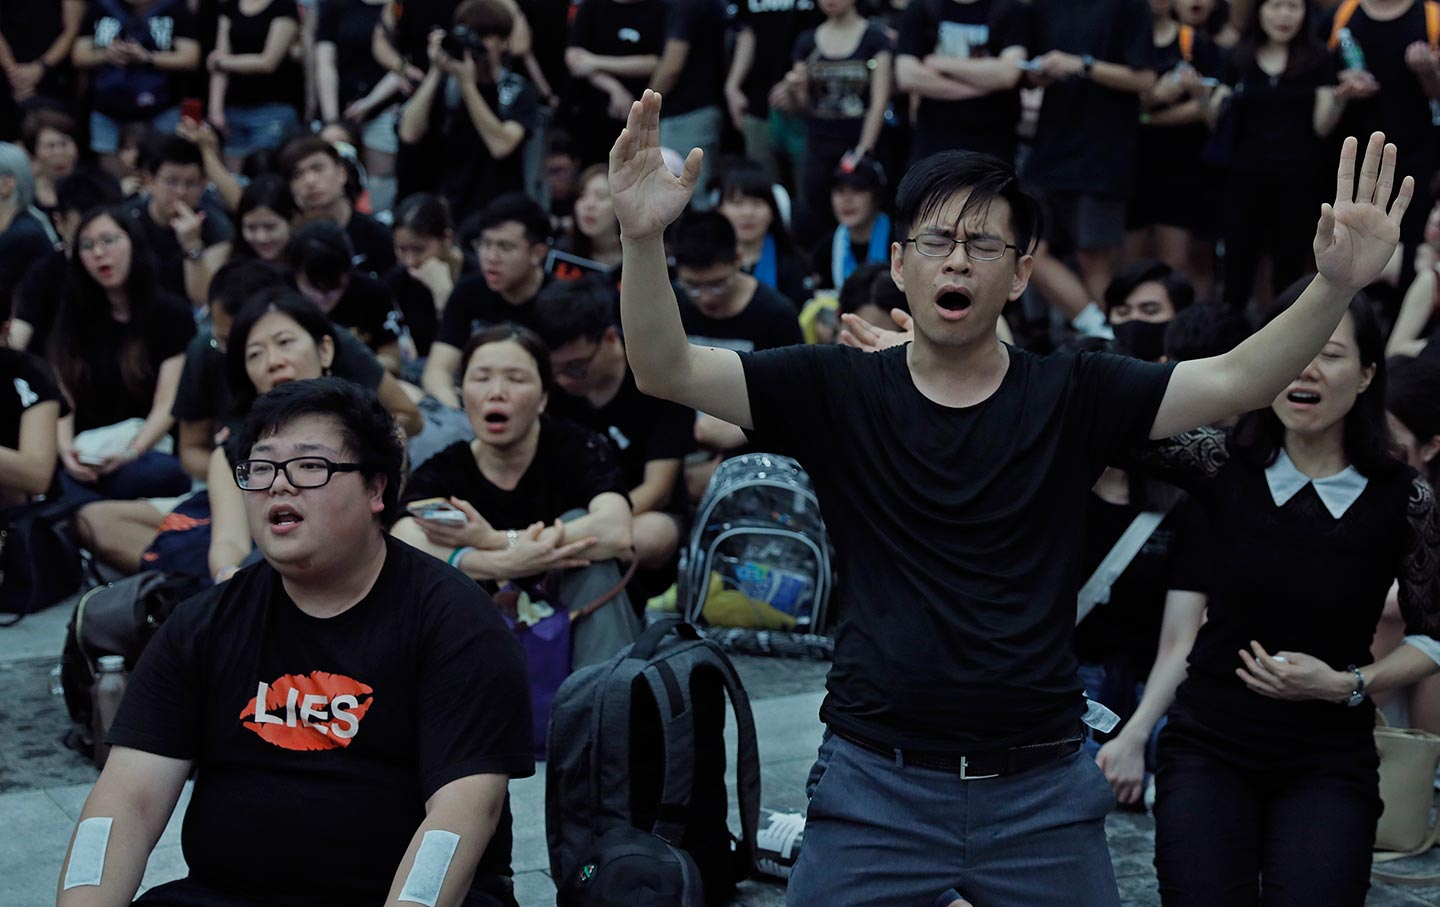 Hong Kong extradition protesters